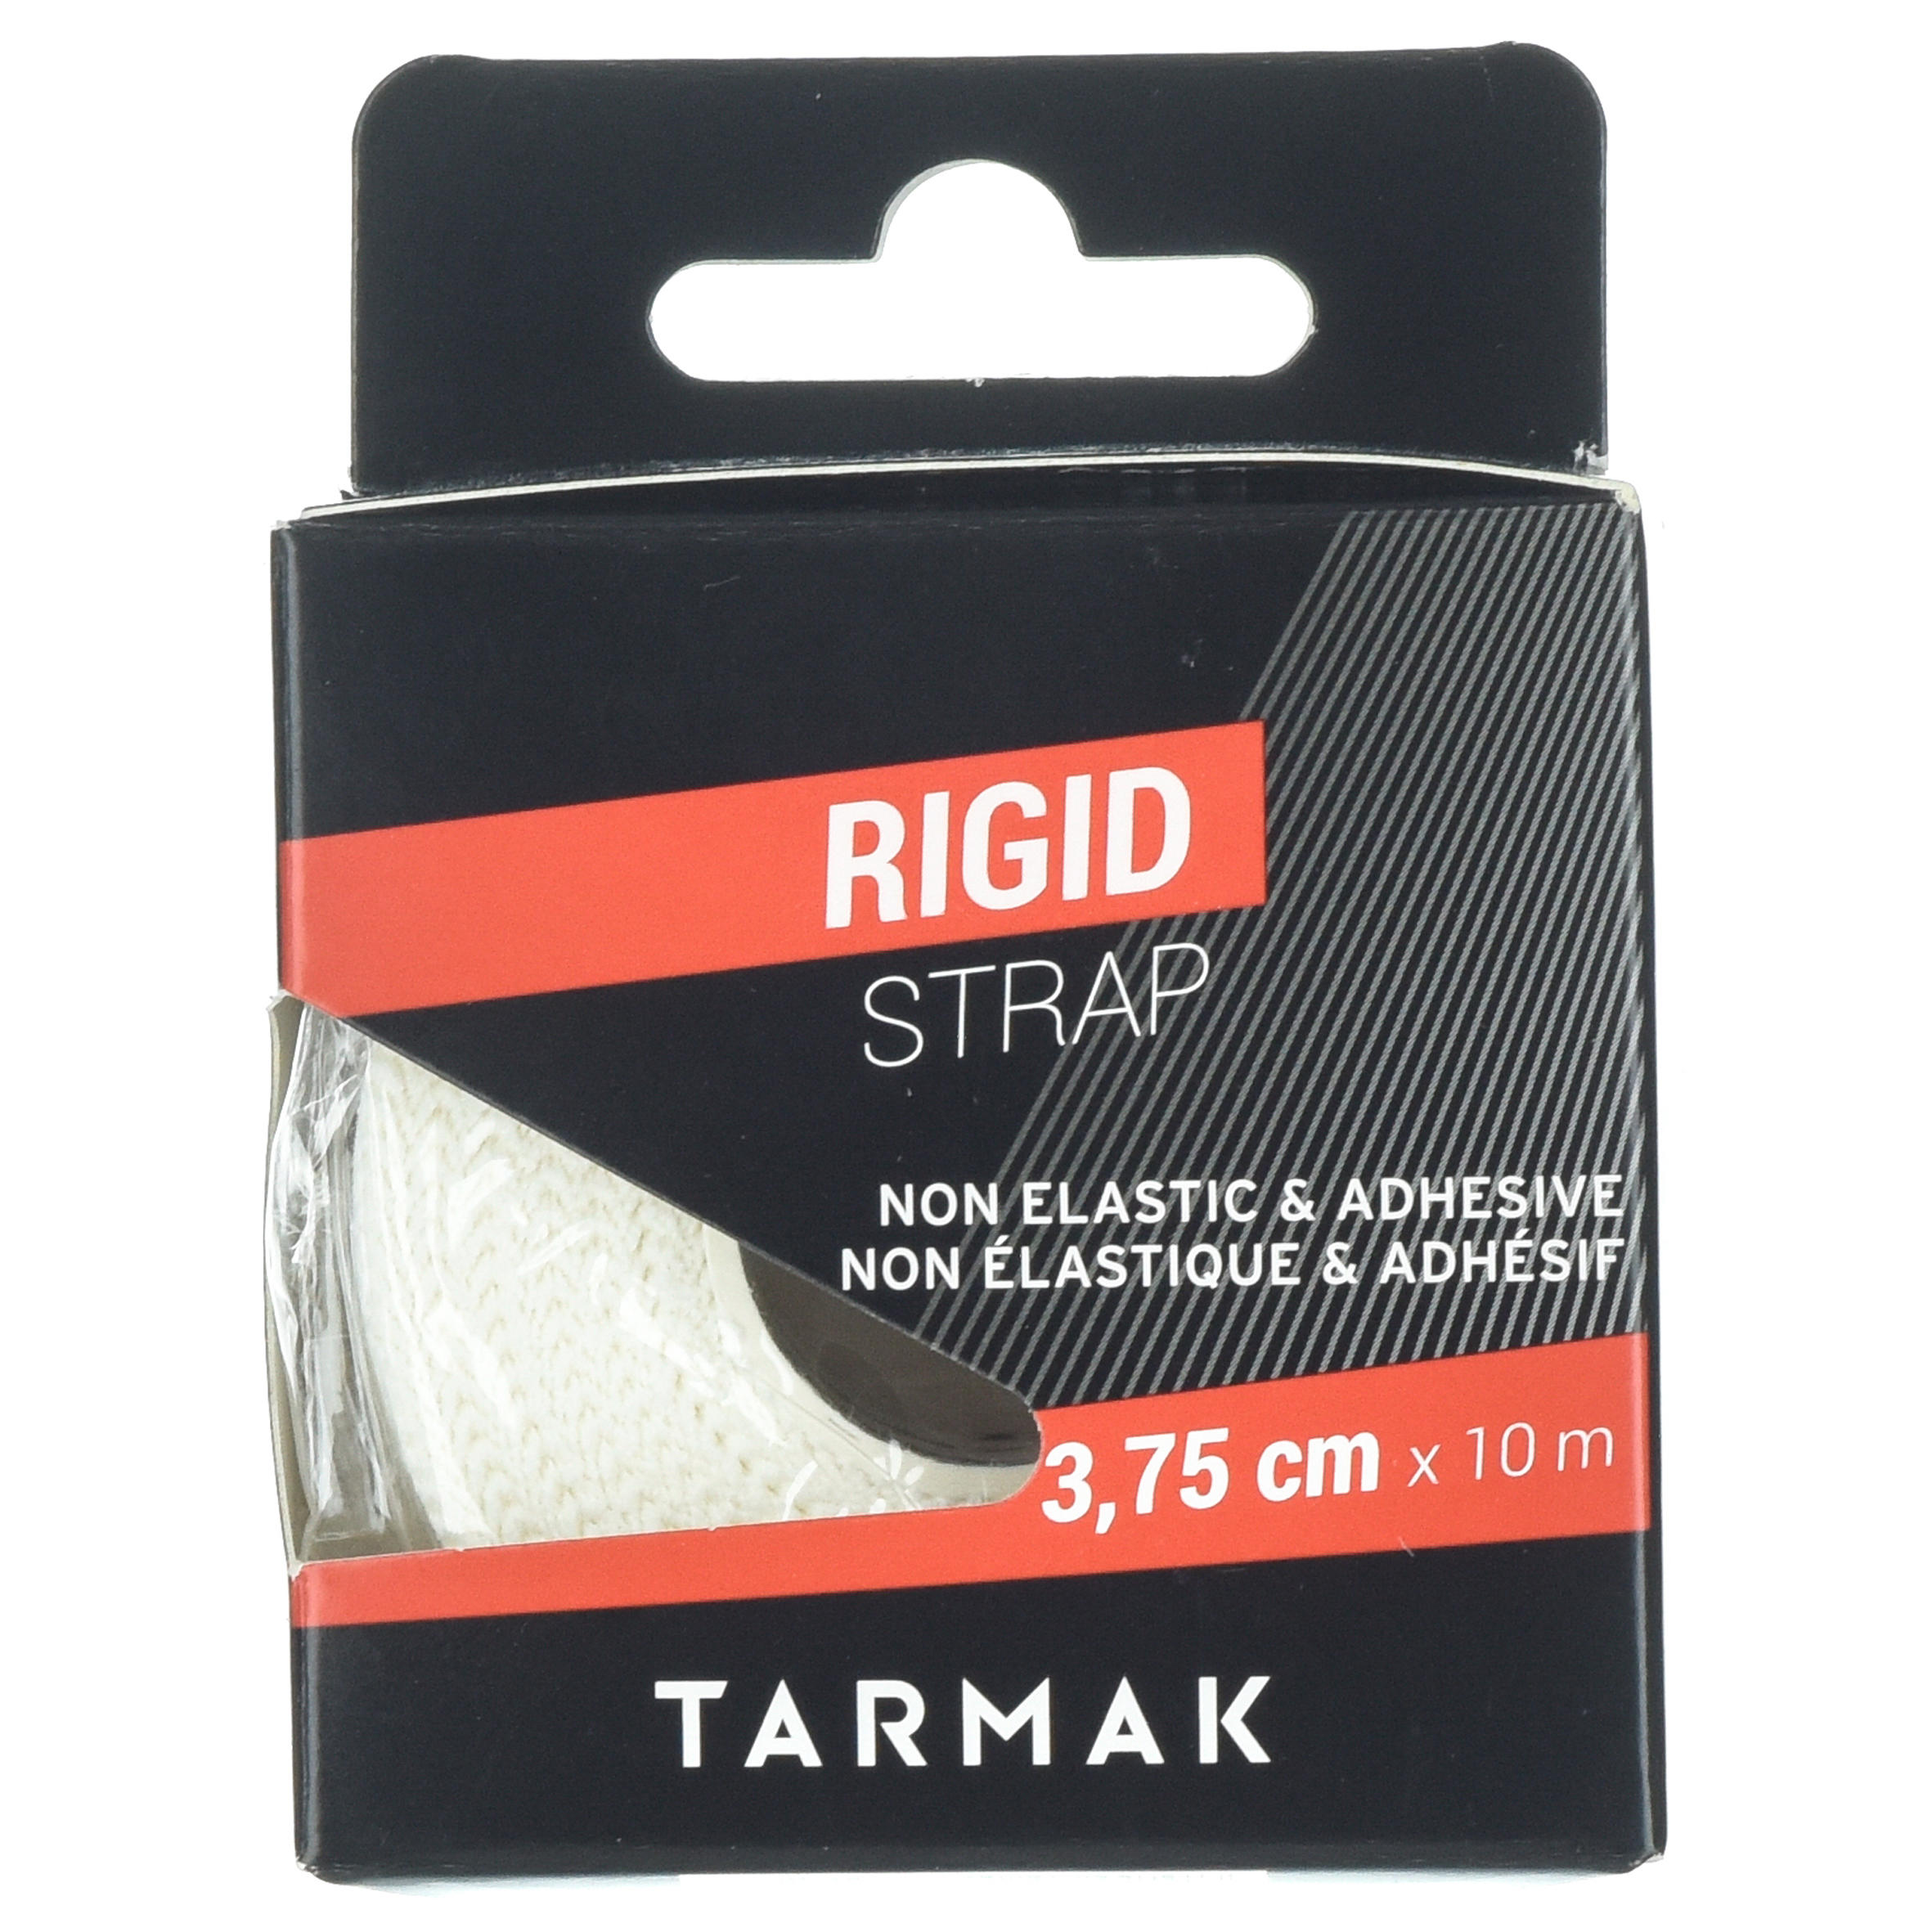 Rigid Support Strap - White.